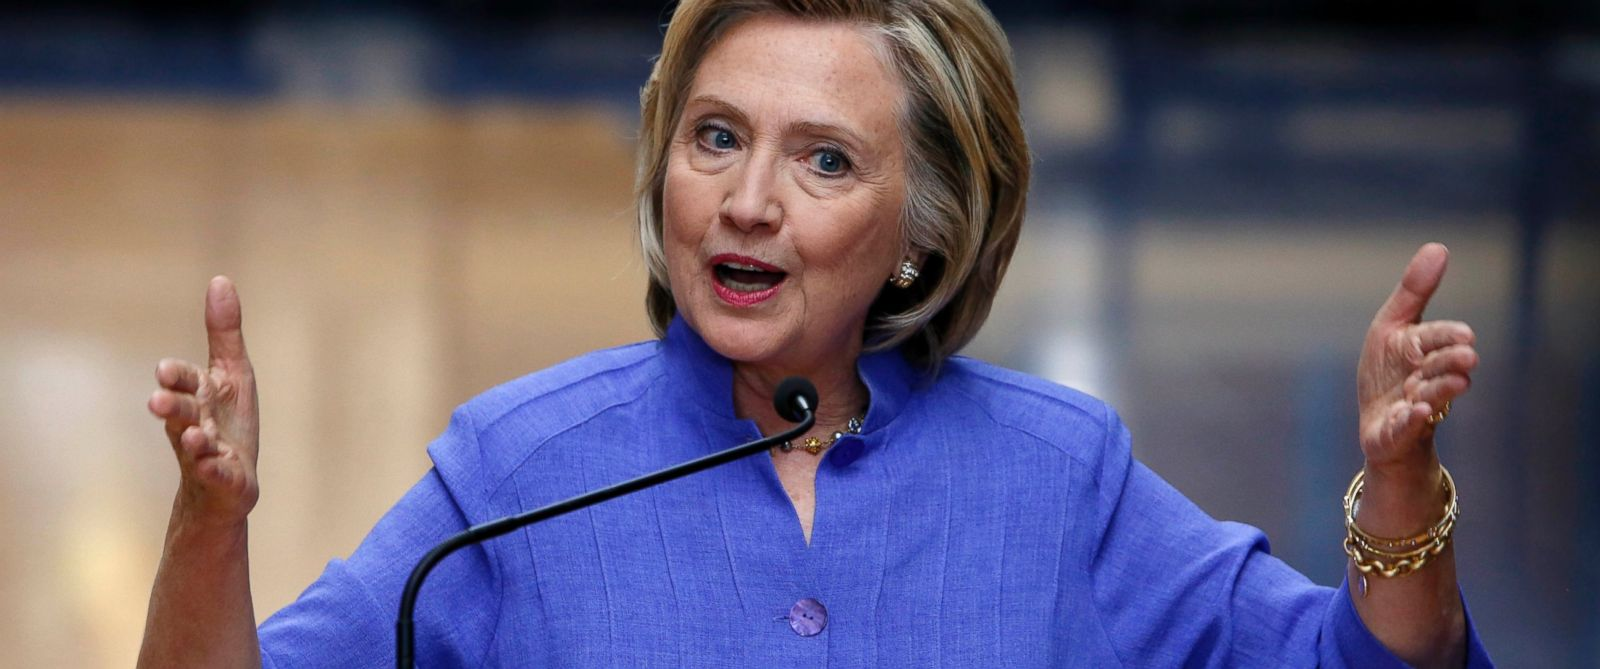 PHOTO: Democratic presidential candidate Hillary Rodham Clinton answers reporters questions about Republican presidential candidate Donald Trump after announcing her college affordability plan, Aug. 10, 2015, at the high school in Exeter, N.H.